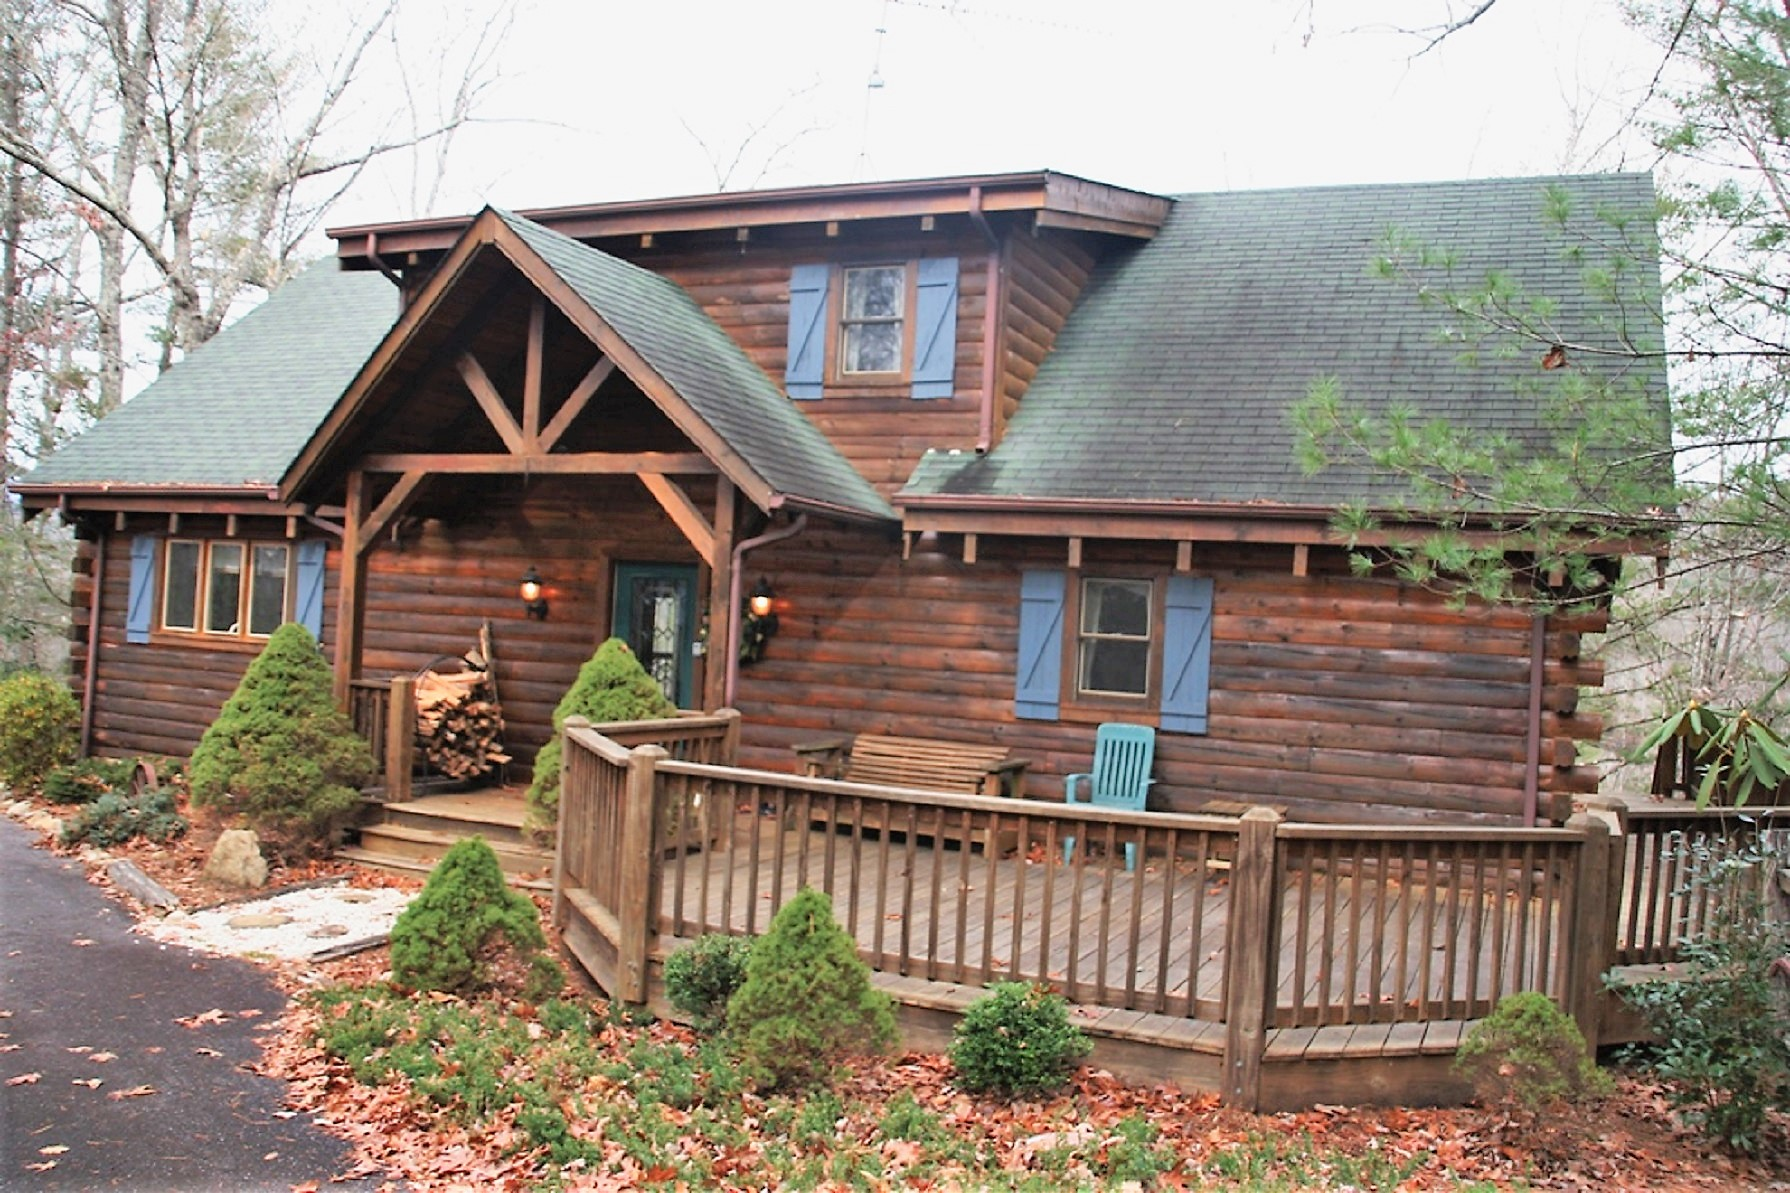 MOUNTAIN LOG HOME WITH VIEWS, FOR SALE IN LEATHERWOOD MOUNTAIN High Horse